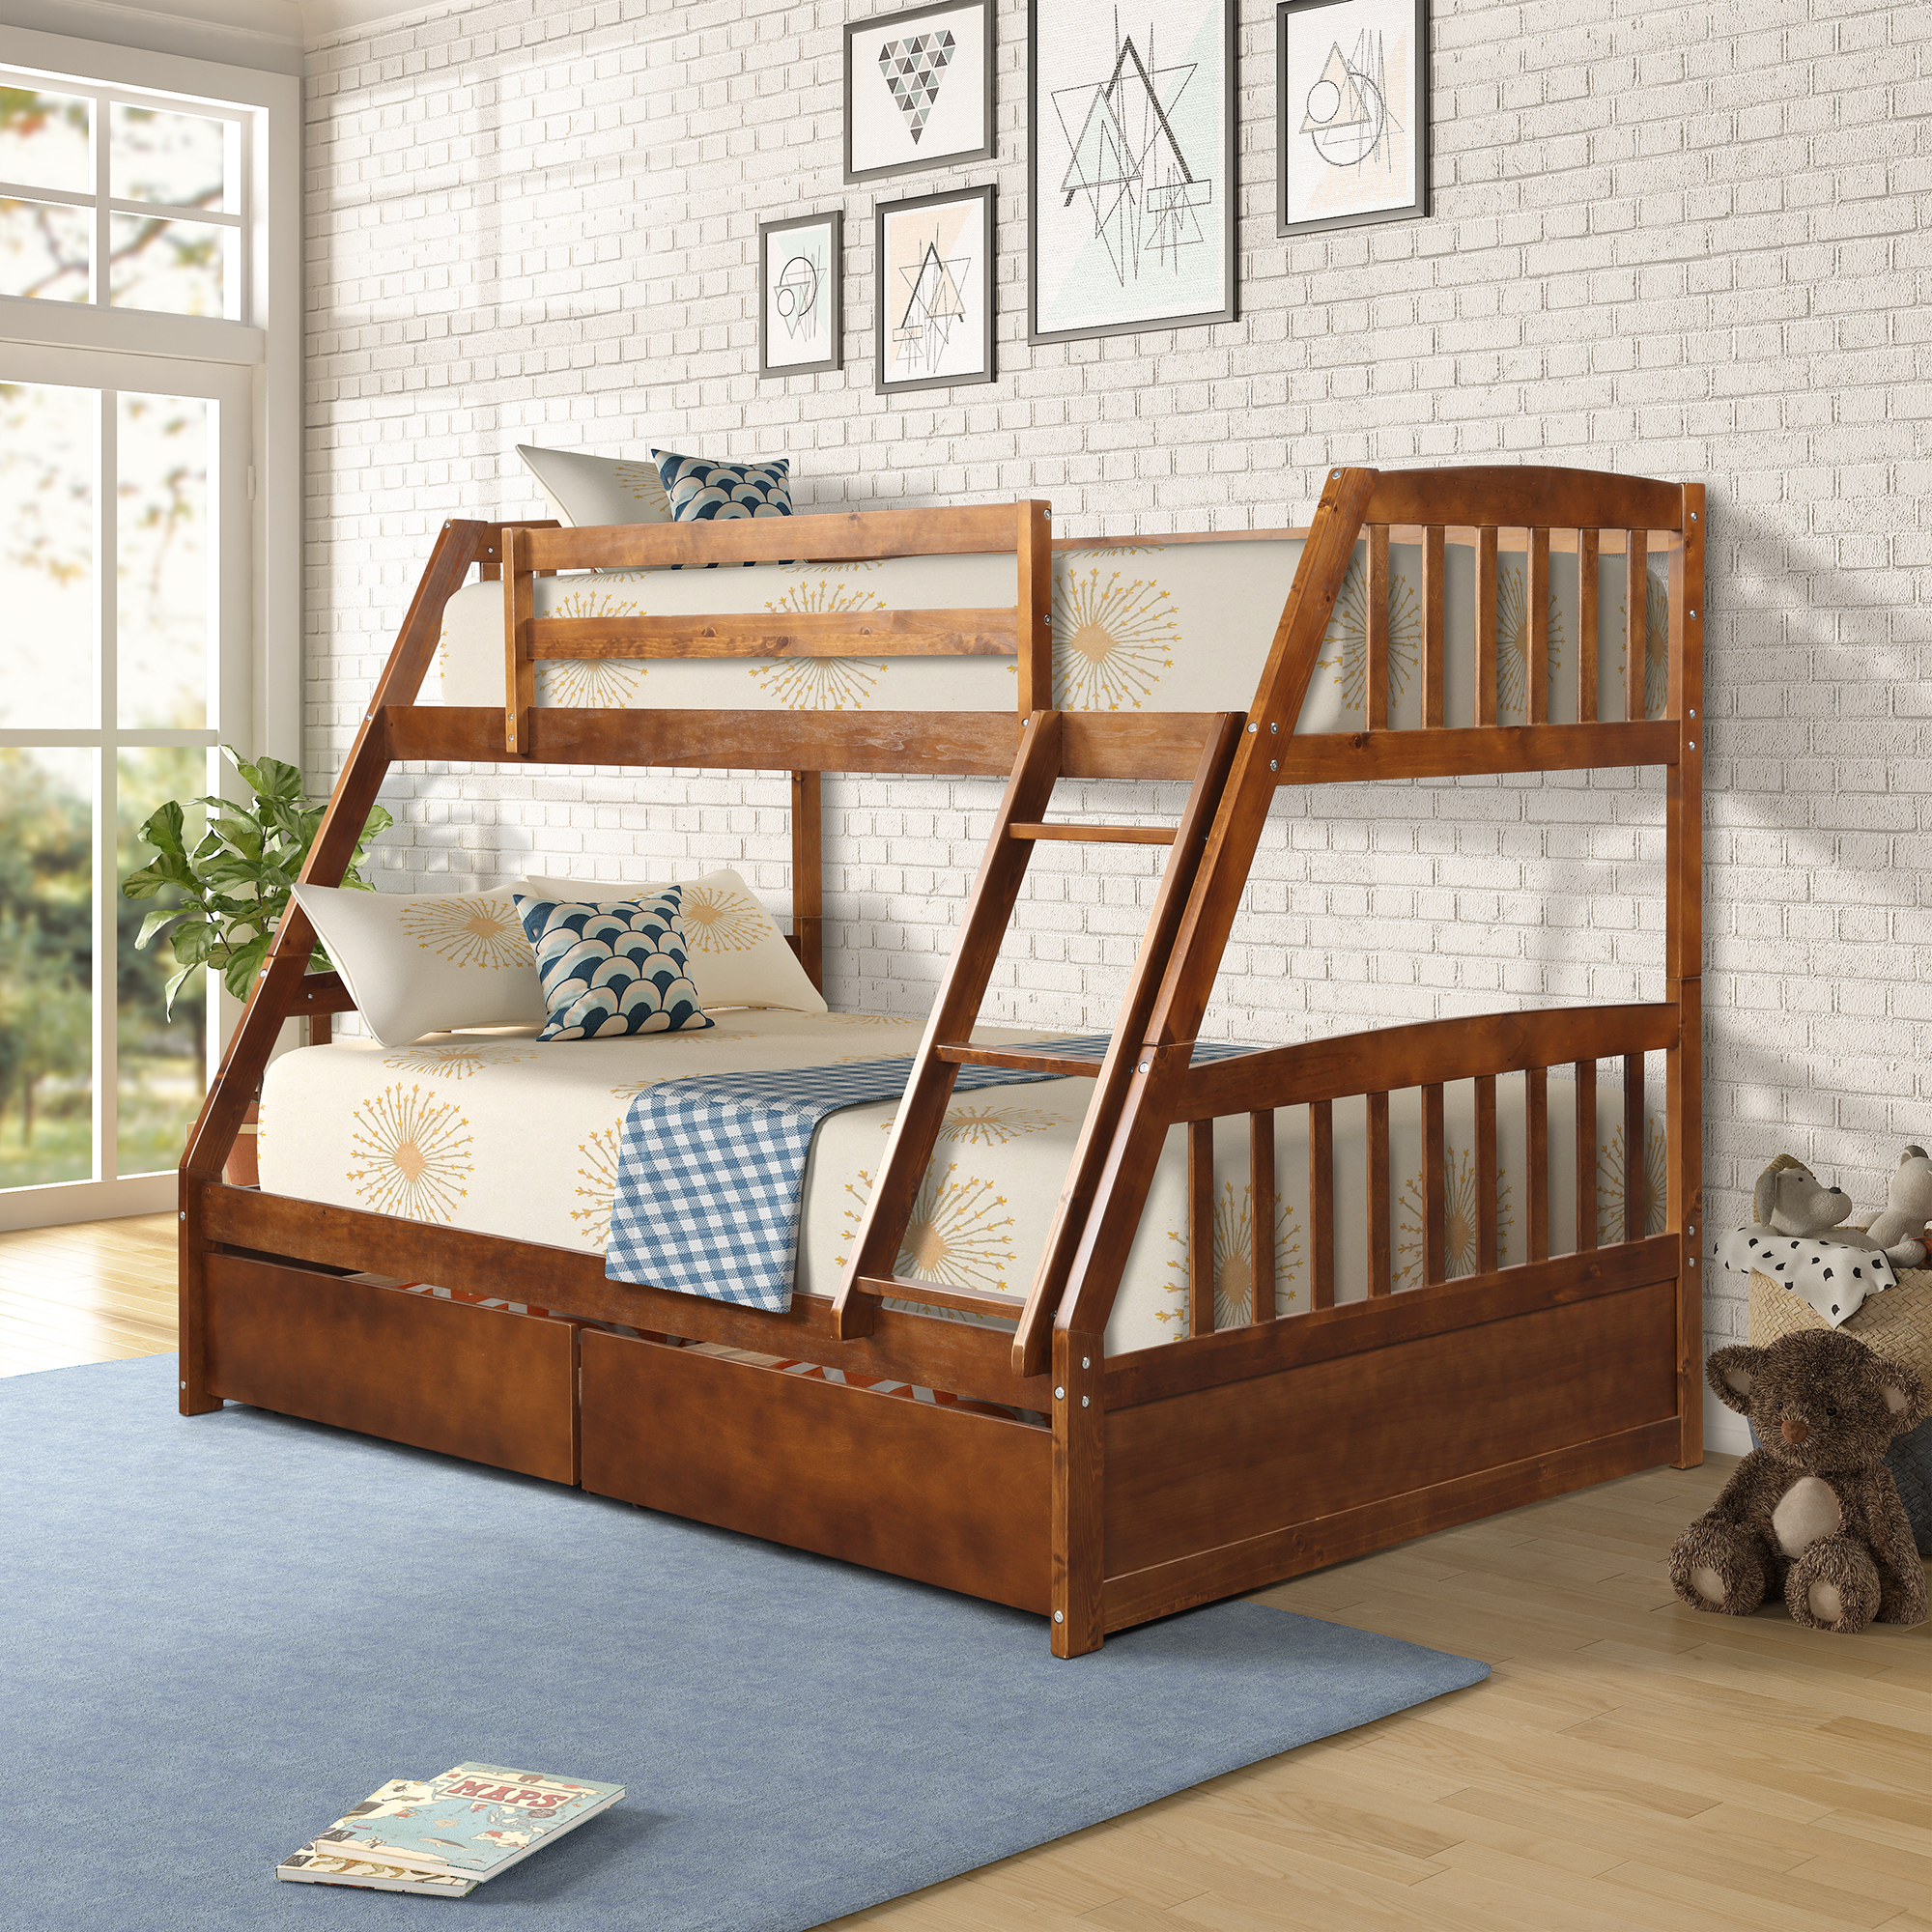 Picture of: Kids Twin Over Full Bunk Beds Solid Wood Bunk Beds With Ladder And Safety Rail Bunk Beds With Drawers Bunk Beds For Boys Girls Bunk Bed For Kids Guest Room Bedroom Walnut